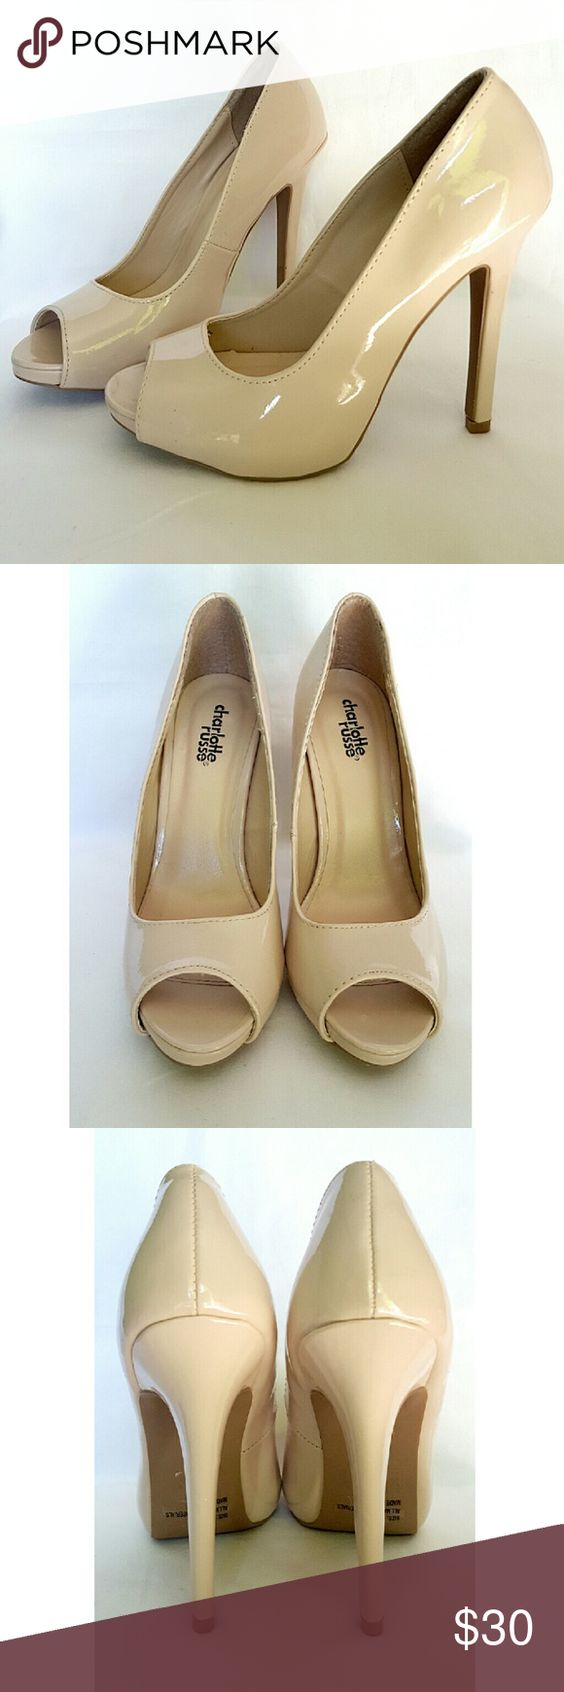 """Charlotte Russe Pumps Beautiful nude peep toe pumps. All mankind made materials. 4.5"""" heel with 0.5"""" platform. Brand new without box. Never worn. Charlotte Russe Shoes Heels"""